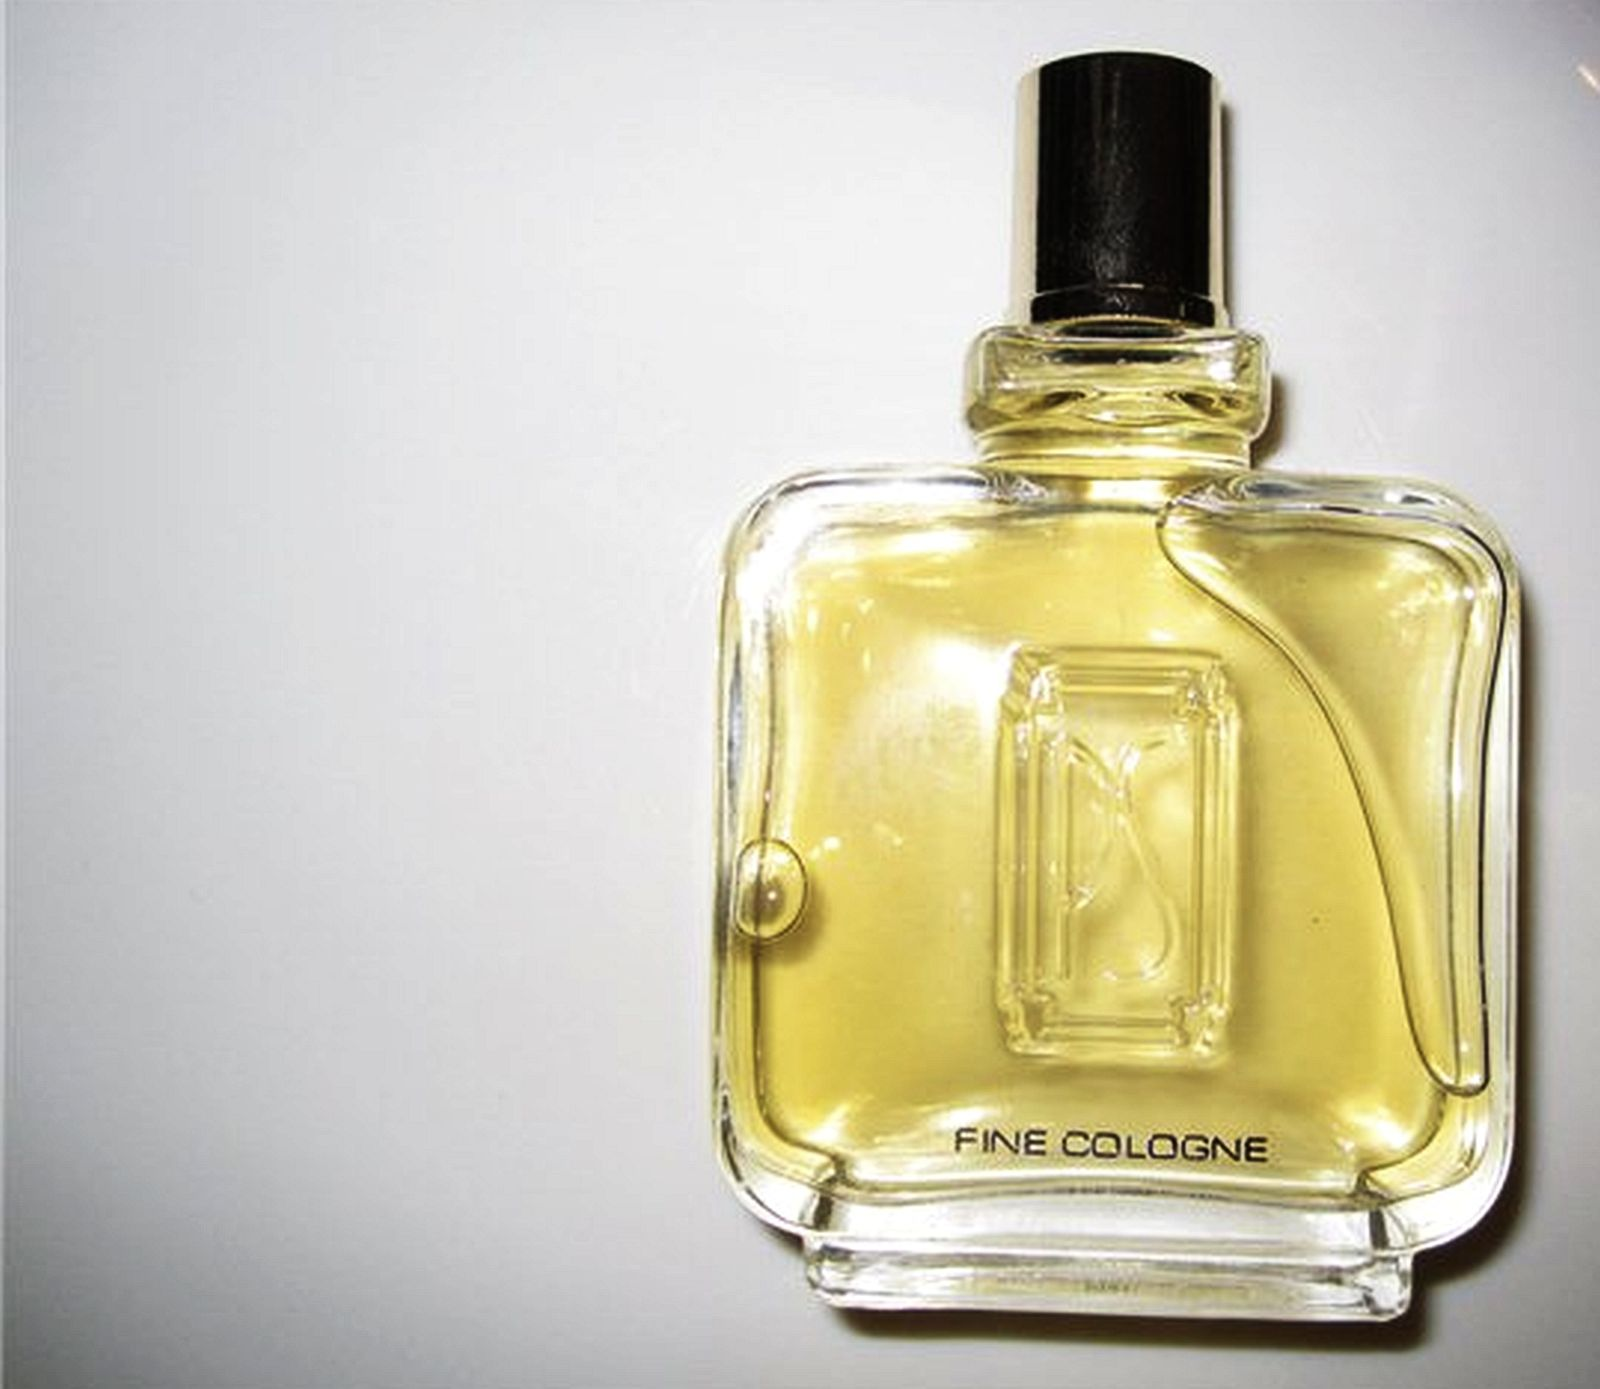 From Pyrgos: PS Fine Cologne (Paul Sebastian)